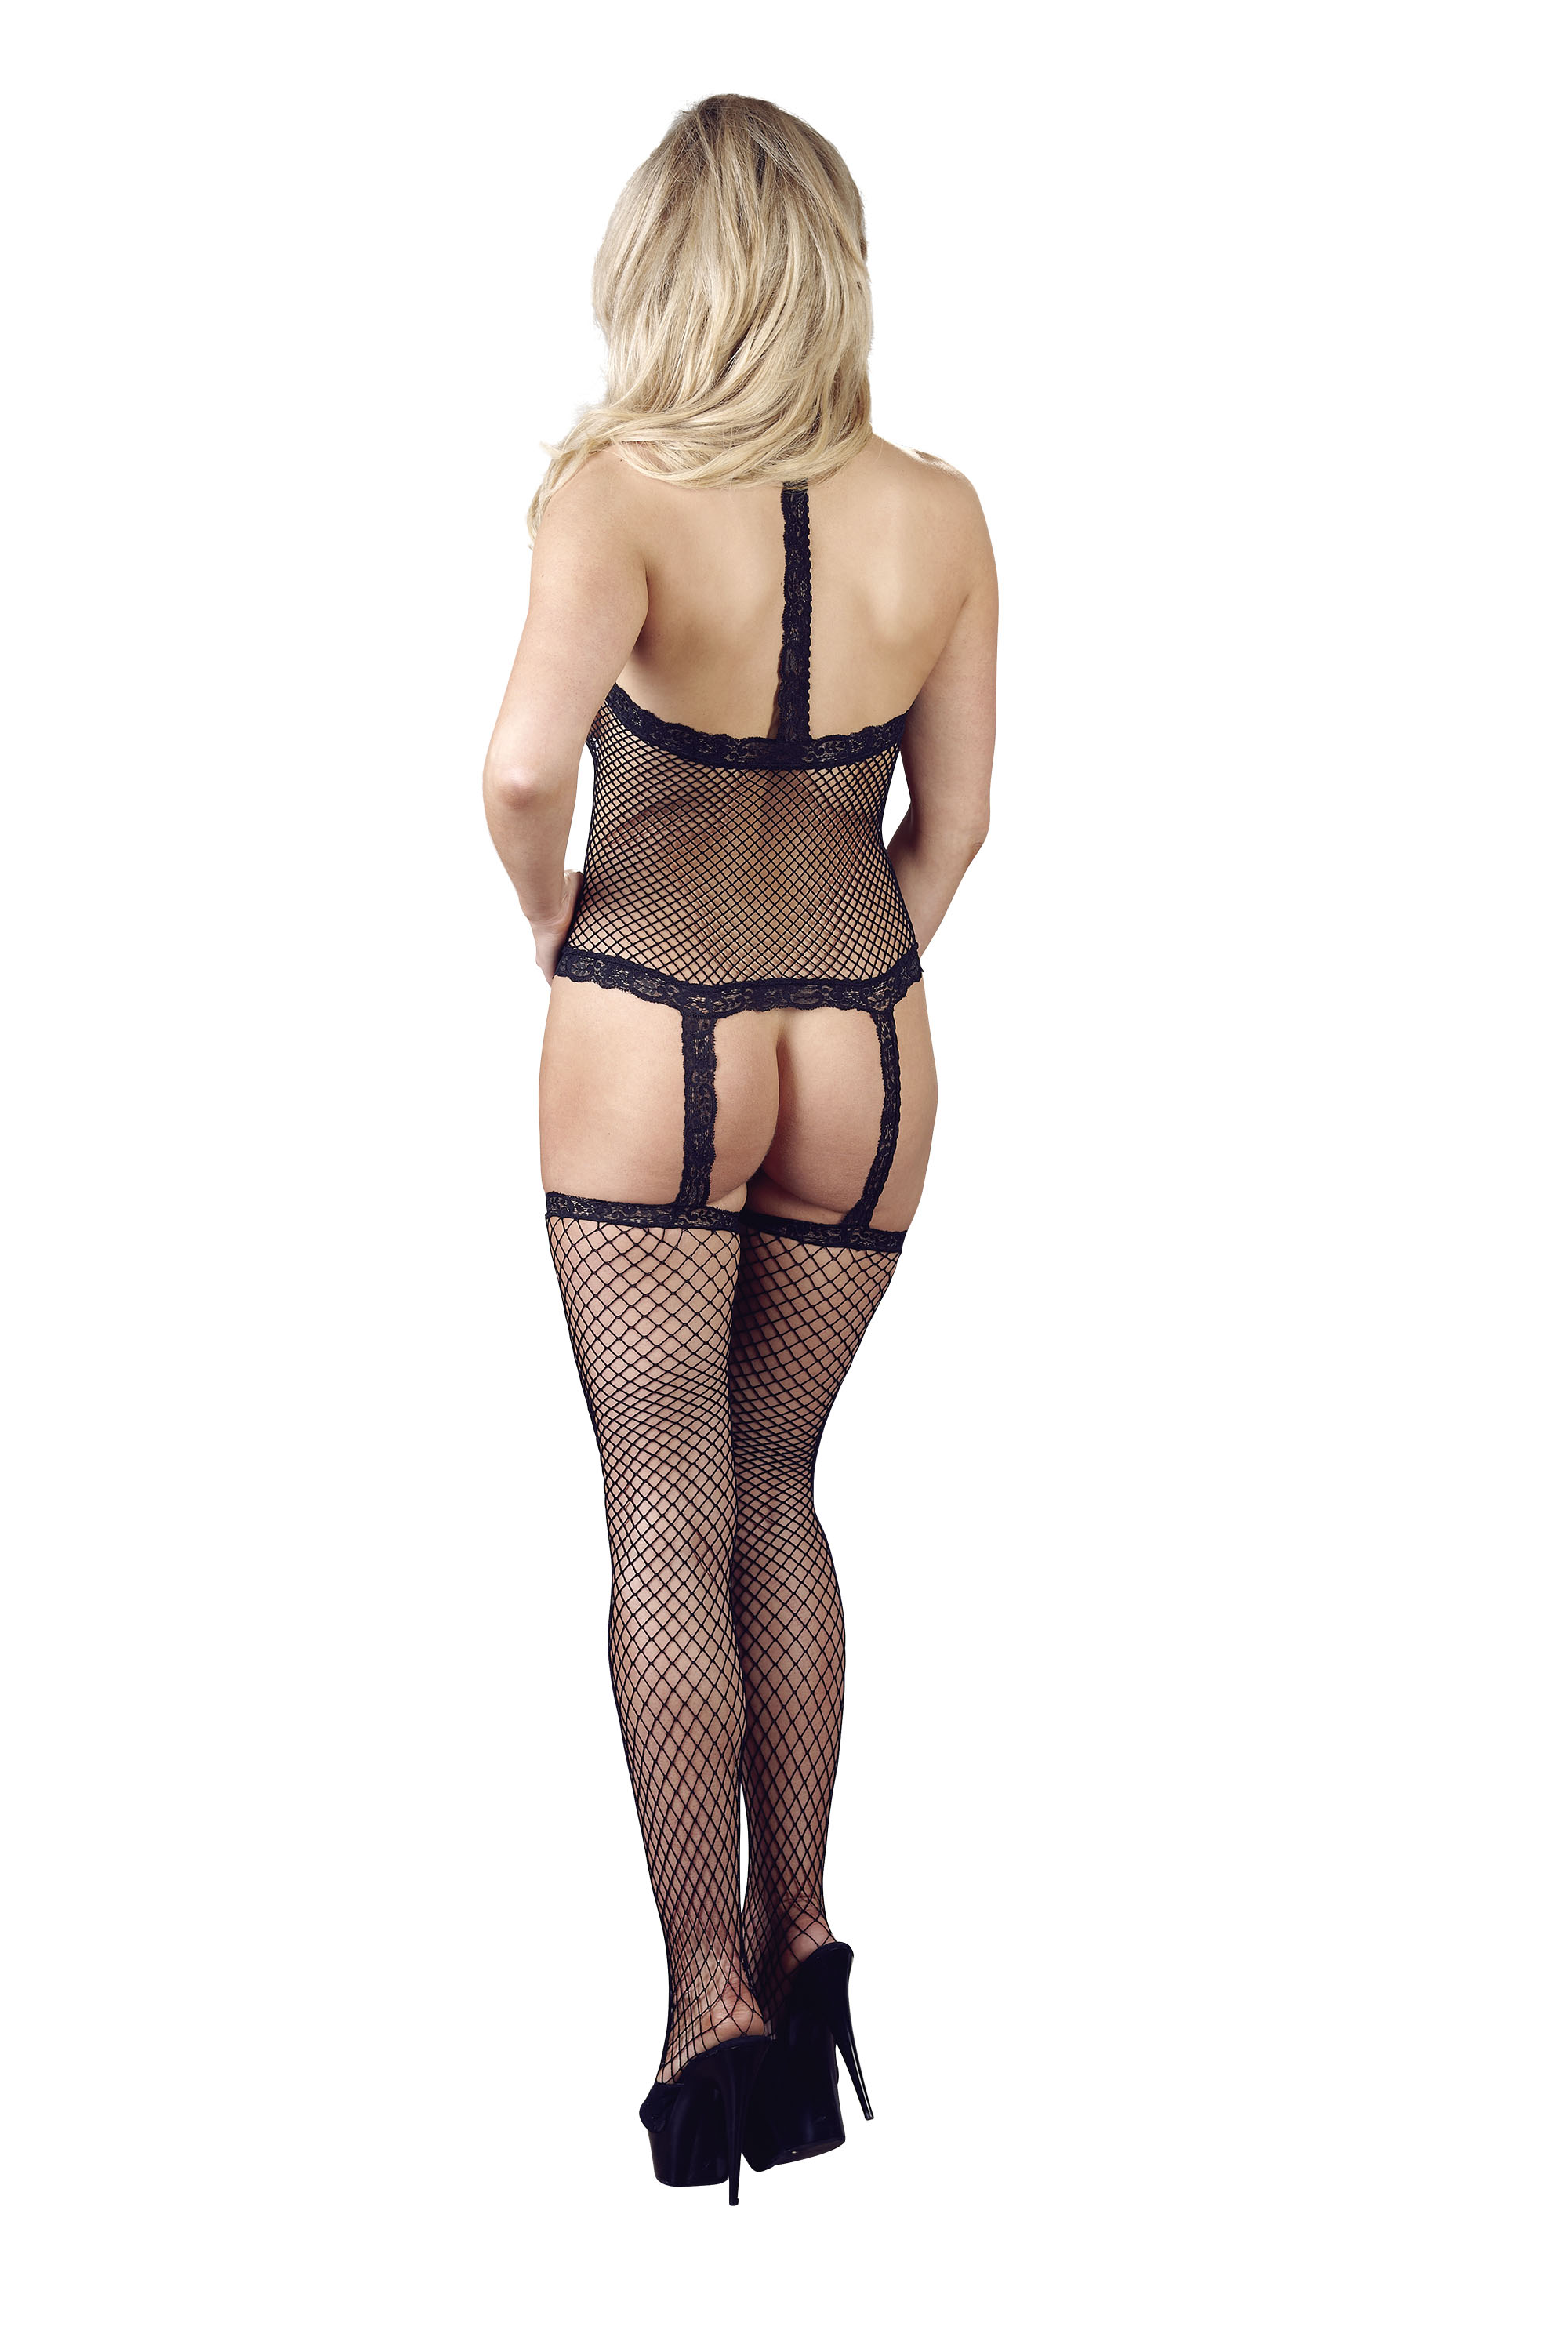 Net Suspender Basque